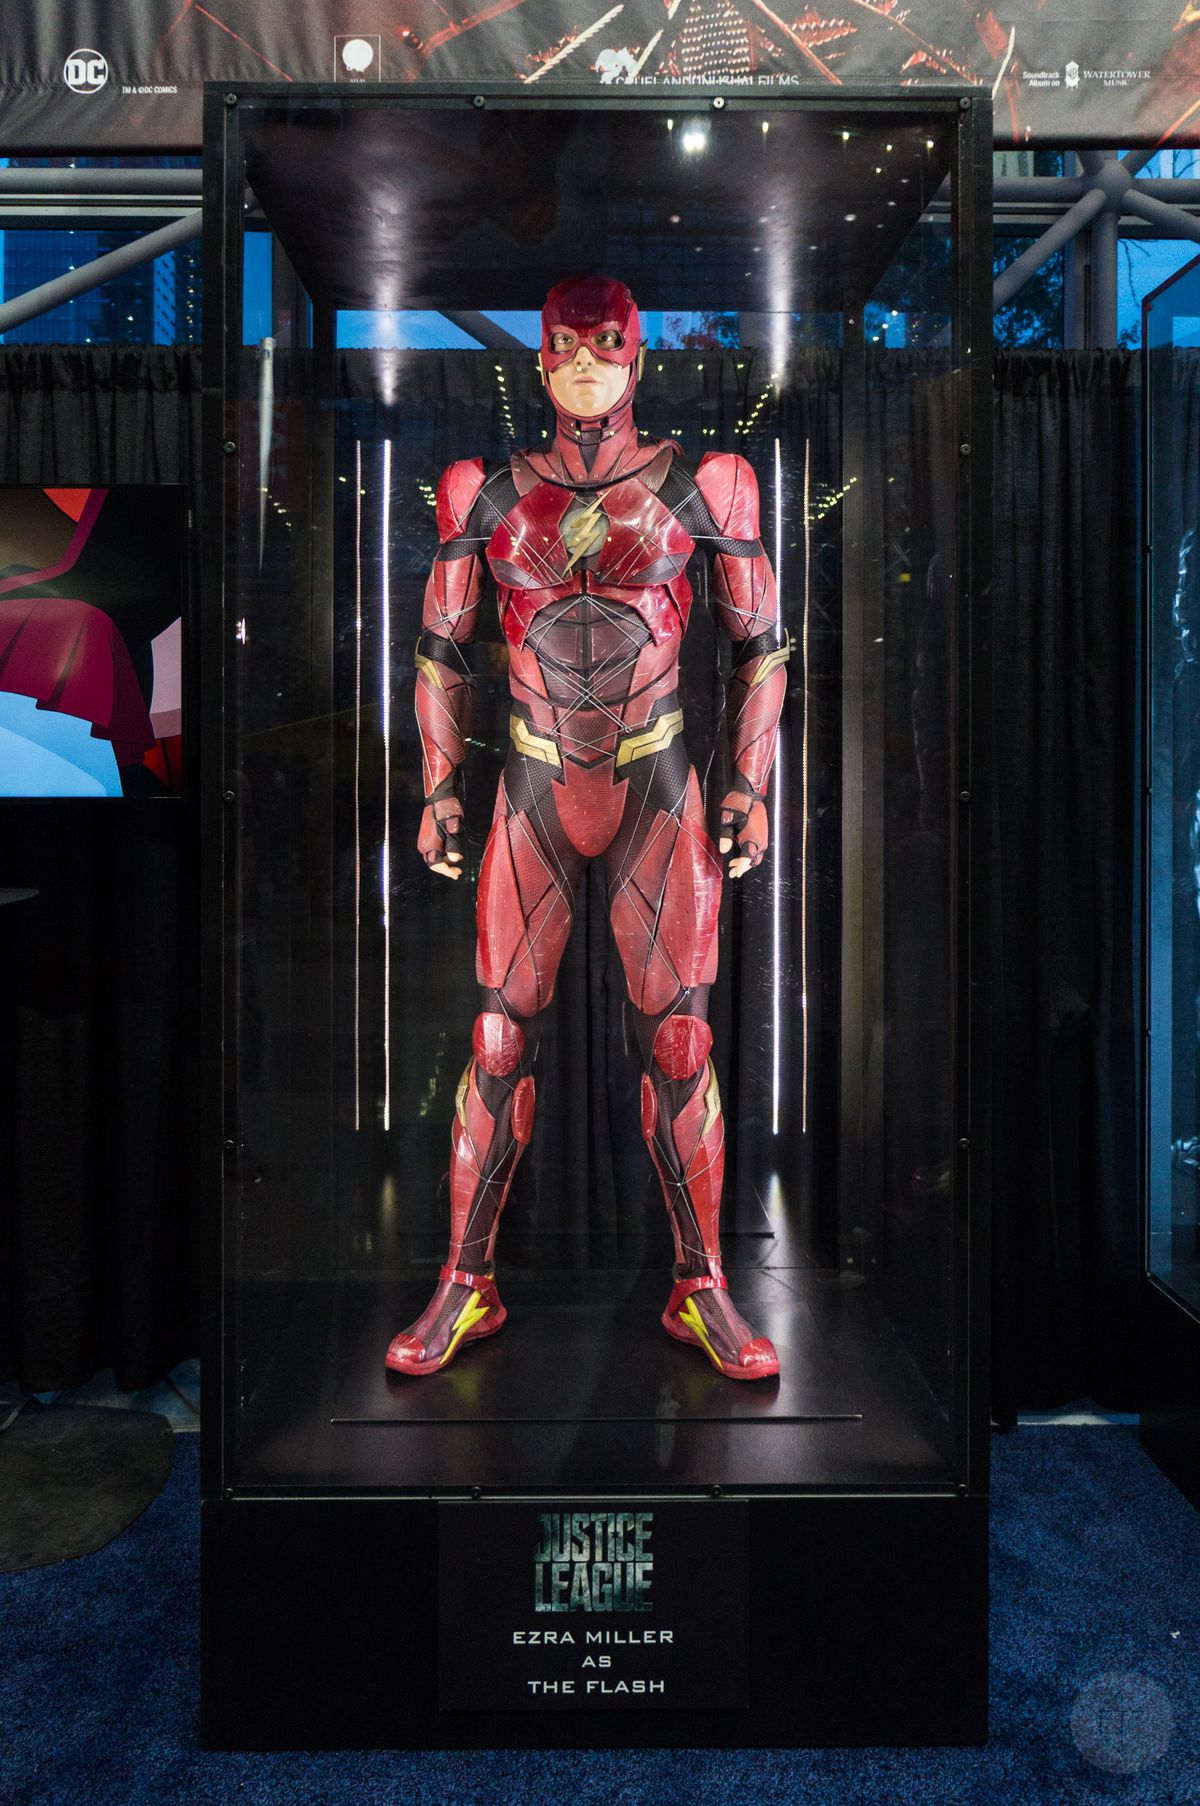 The Flash costume from Justice League movie in glass case at NYCC 2017